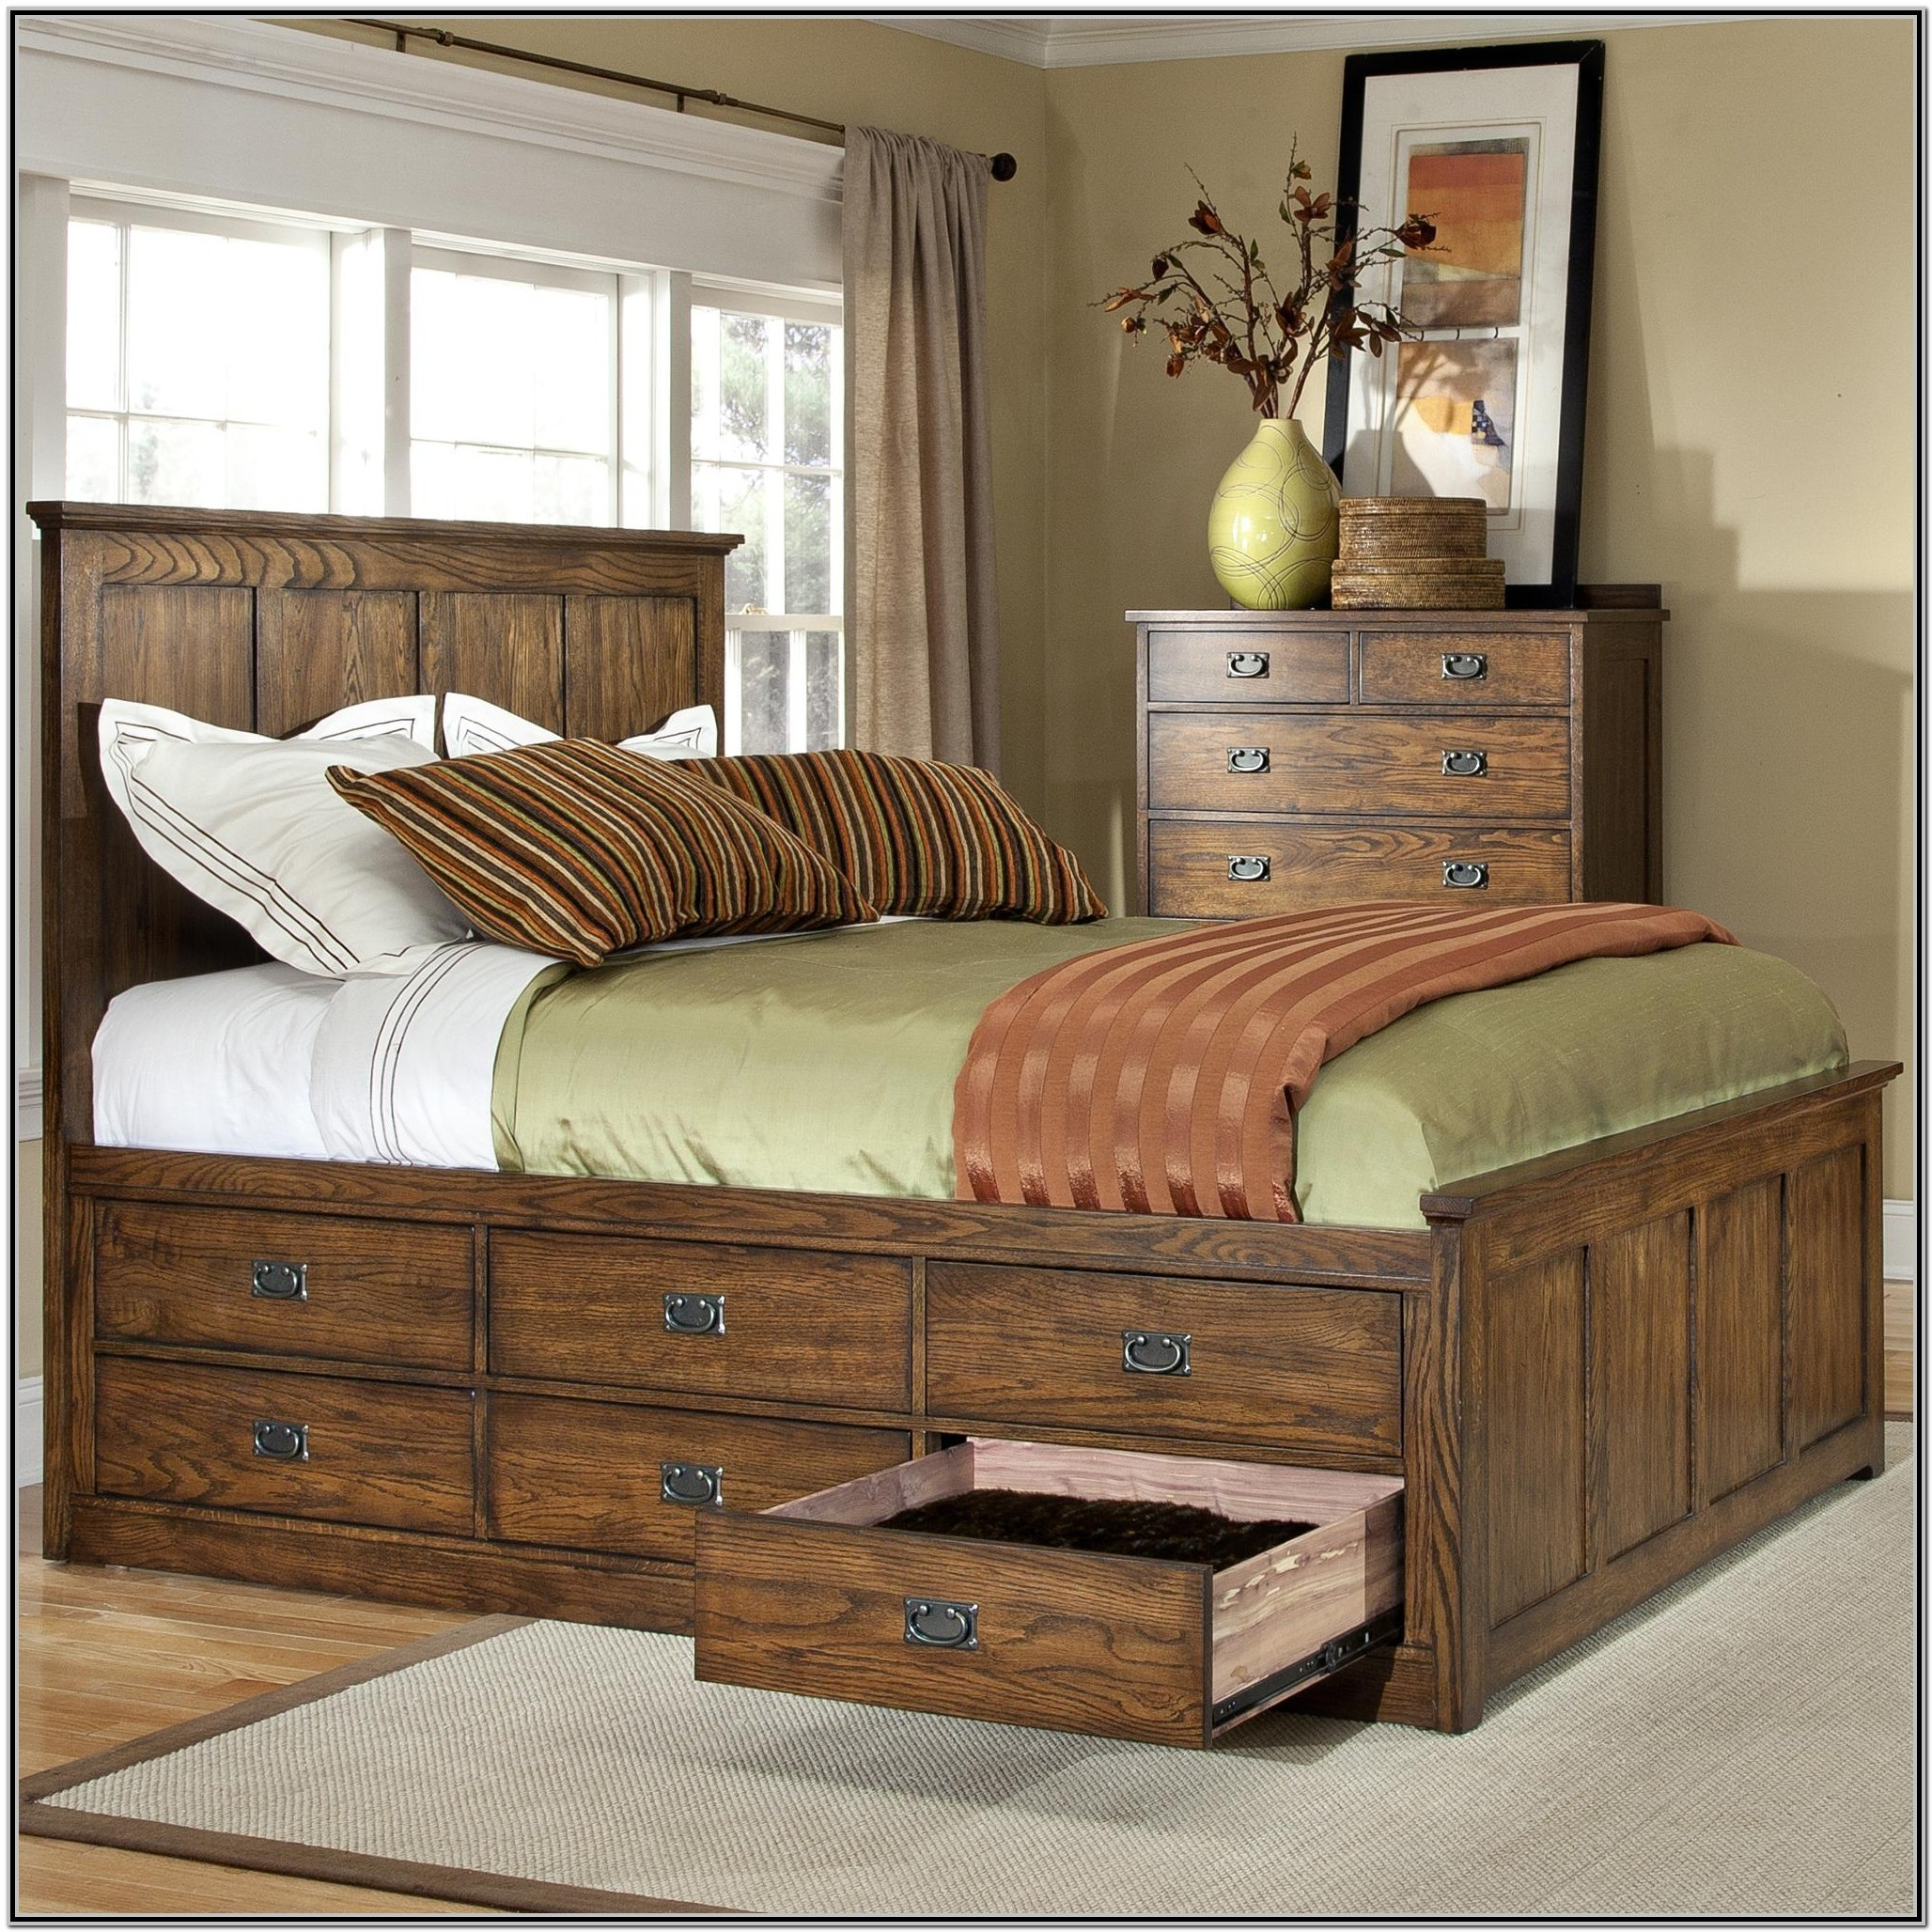 Innovative Bed Frame With Drawers Property